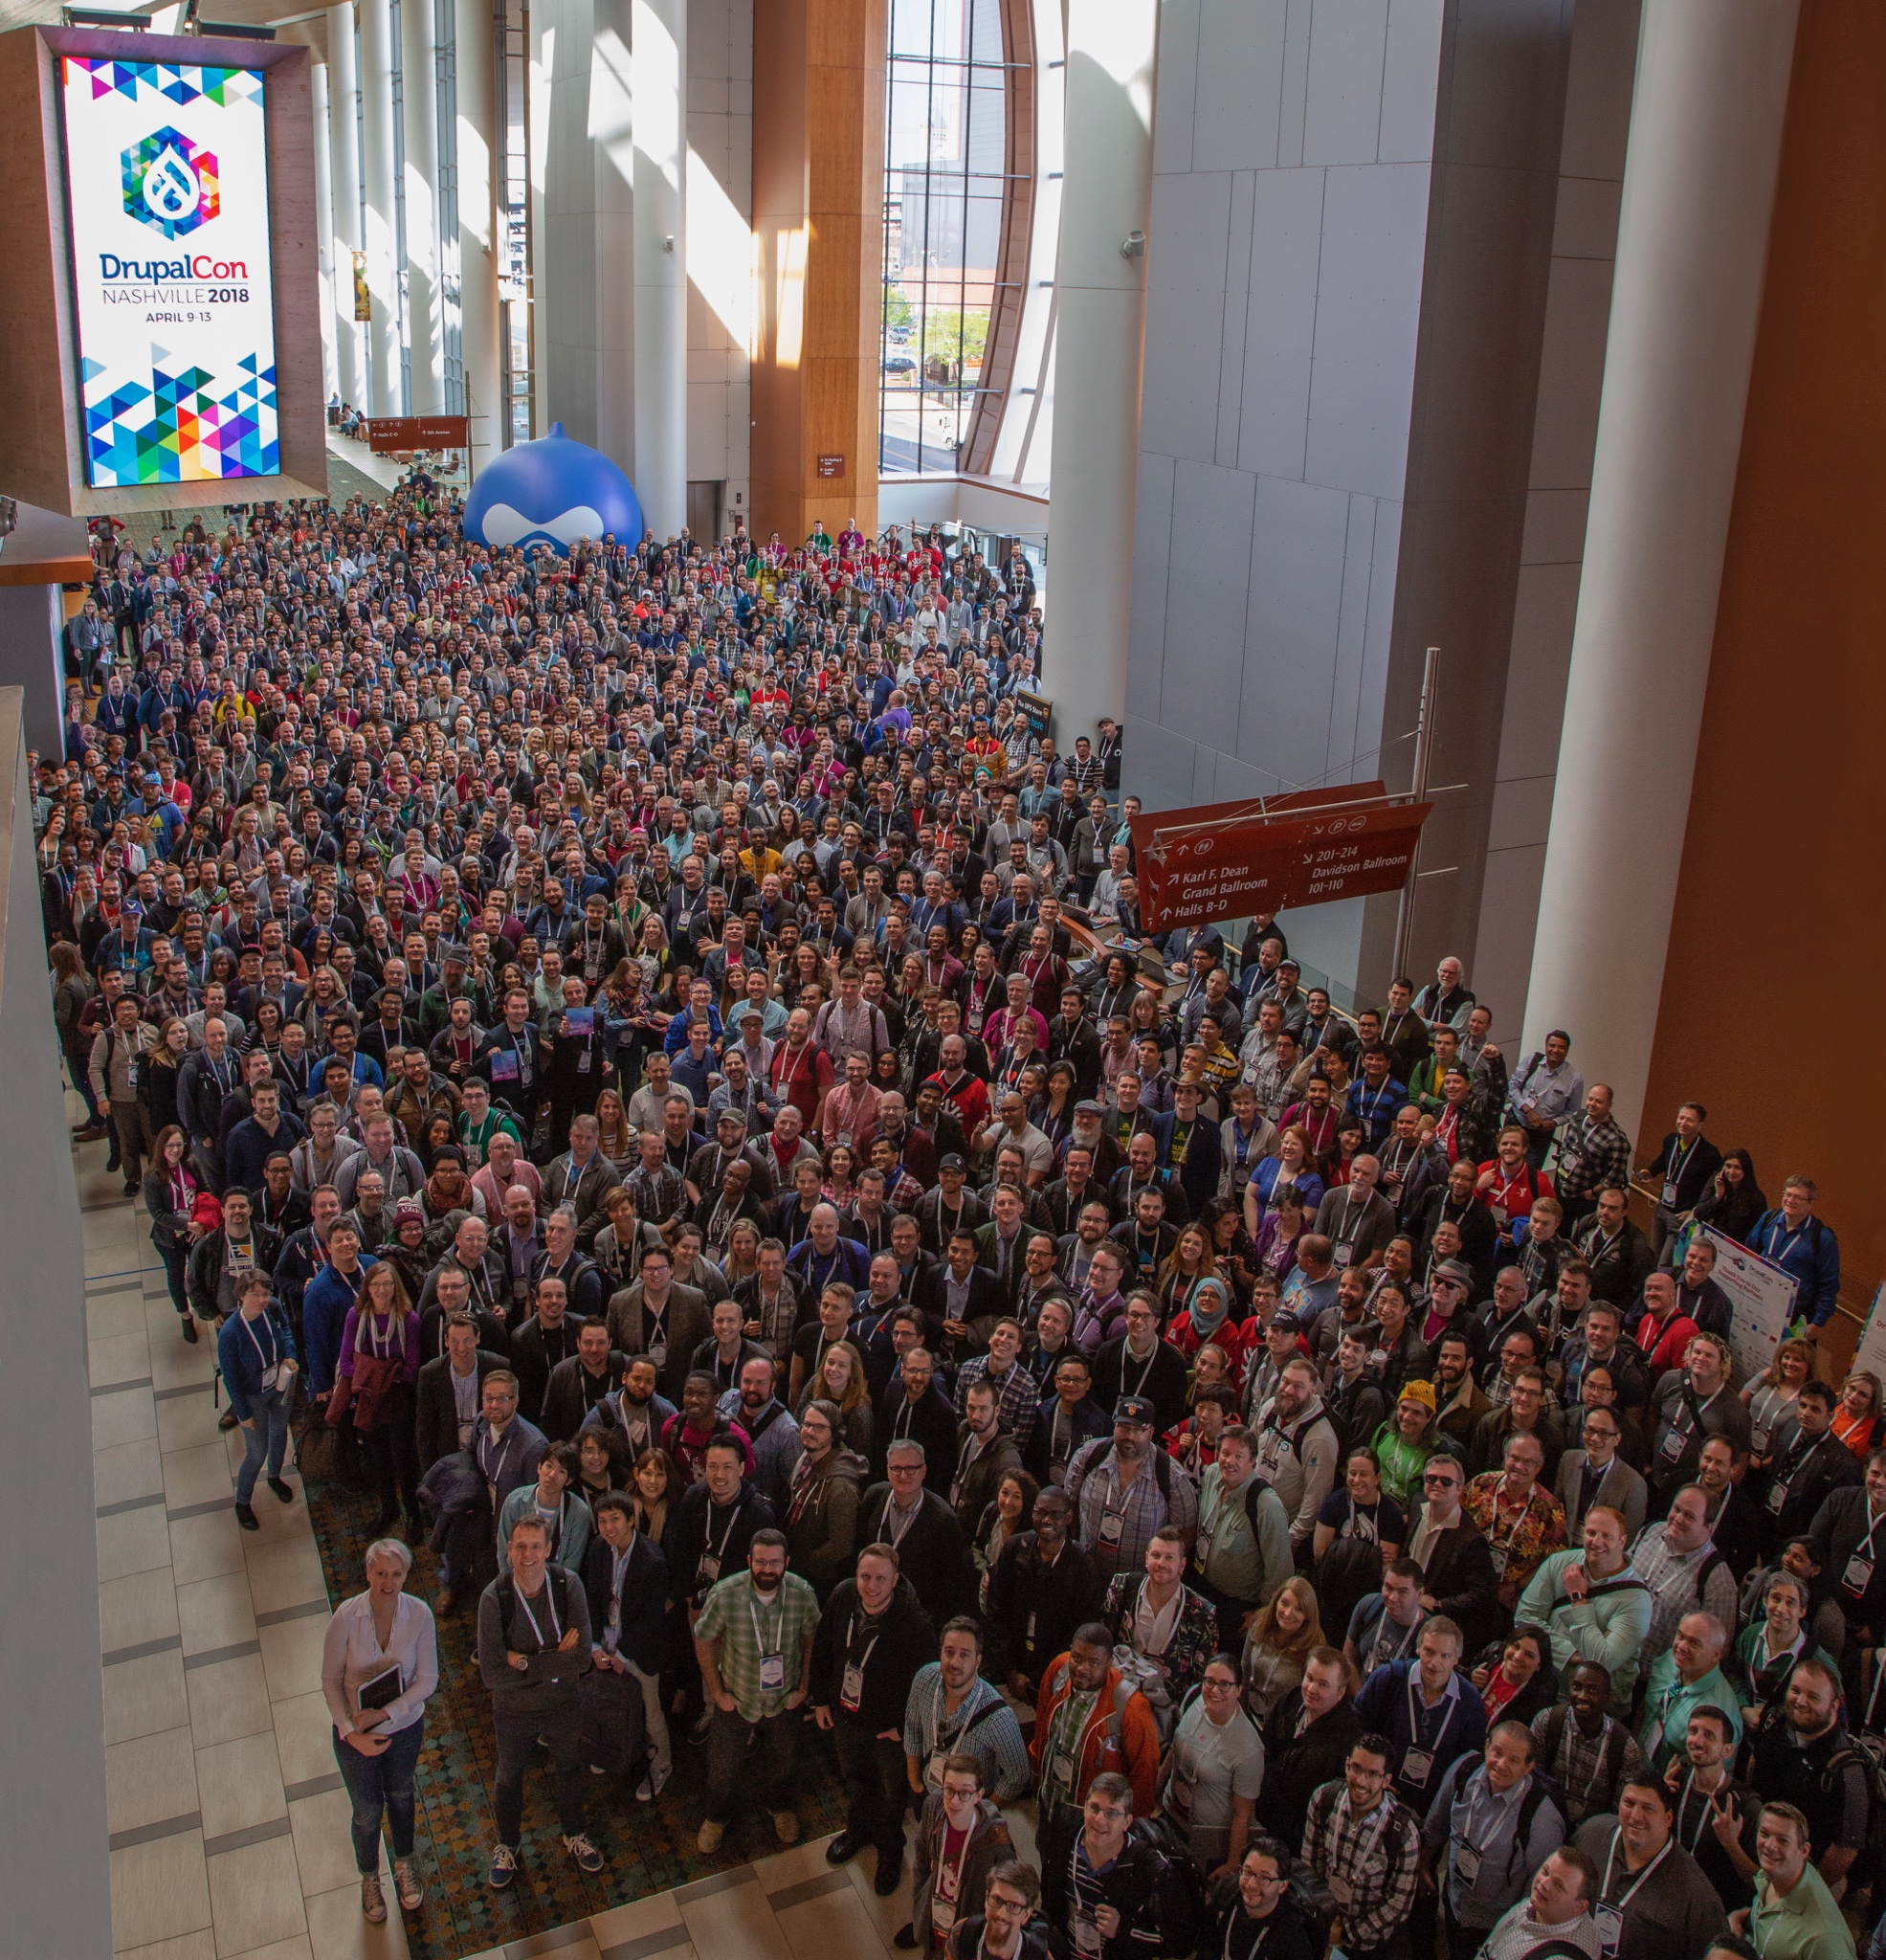 DrupalCon Nashville 2018 Team Photo